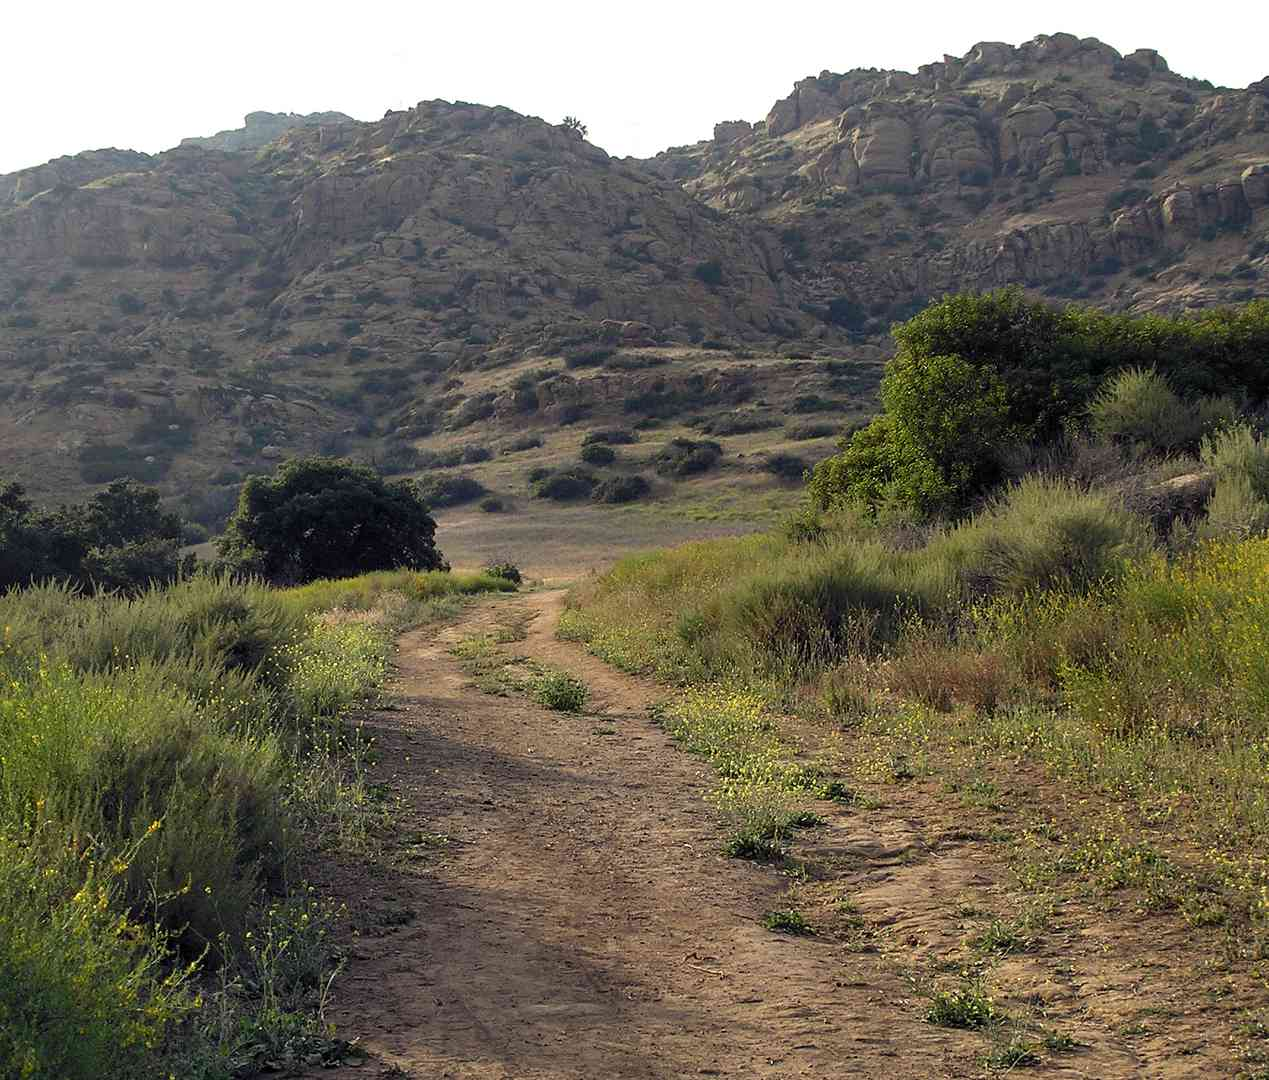 The Spahn Movie Ranch, with a portion of a back road